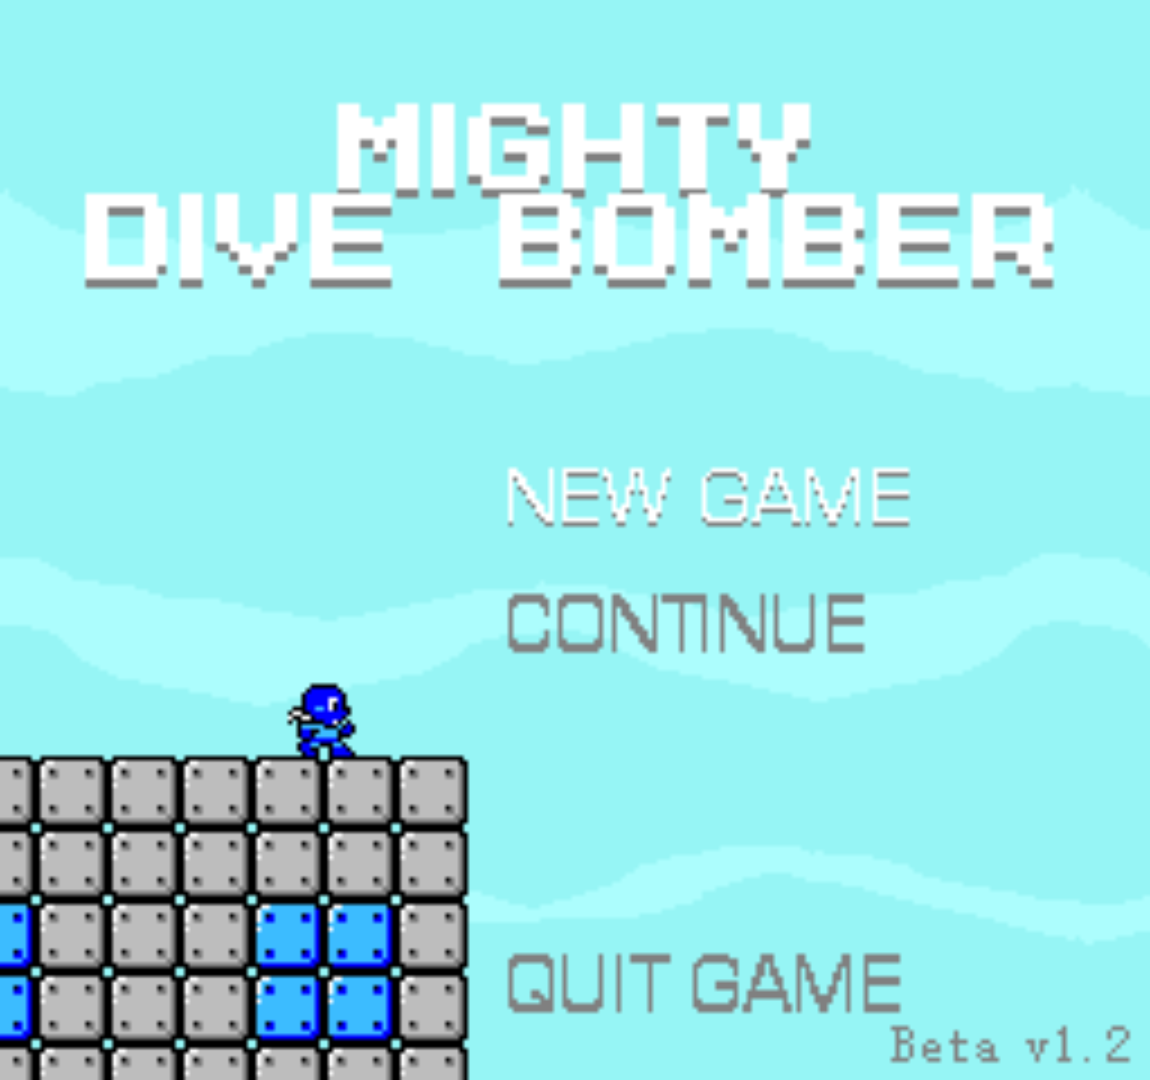 Mighty Dive Bomber - June 20th, 2018